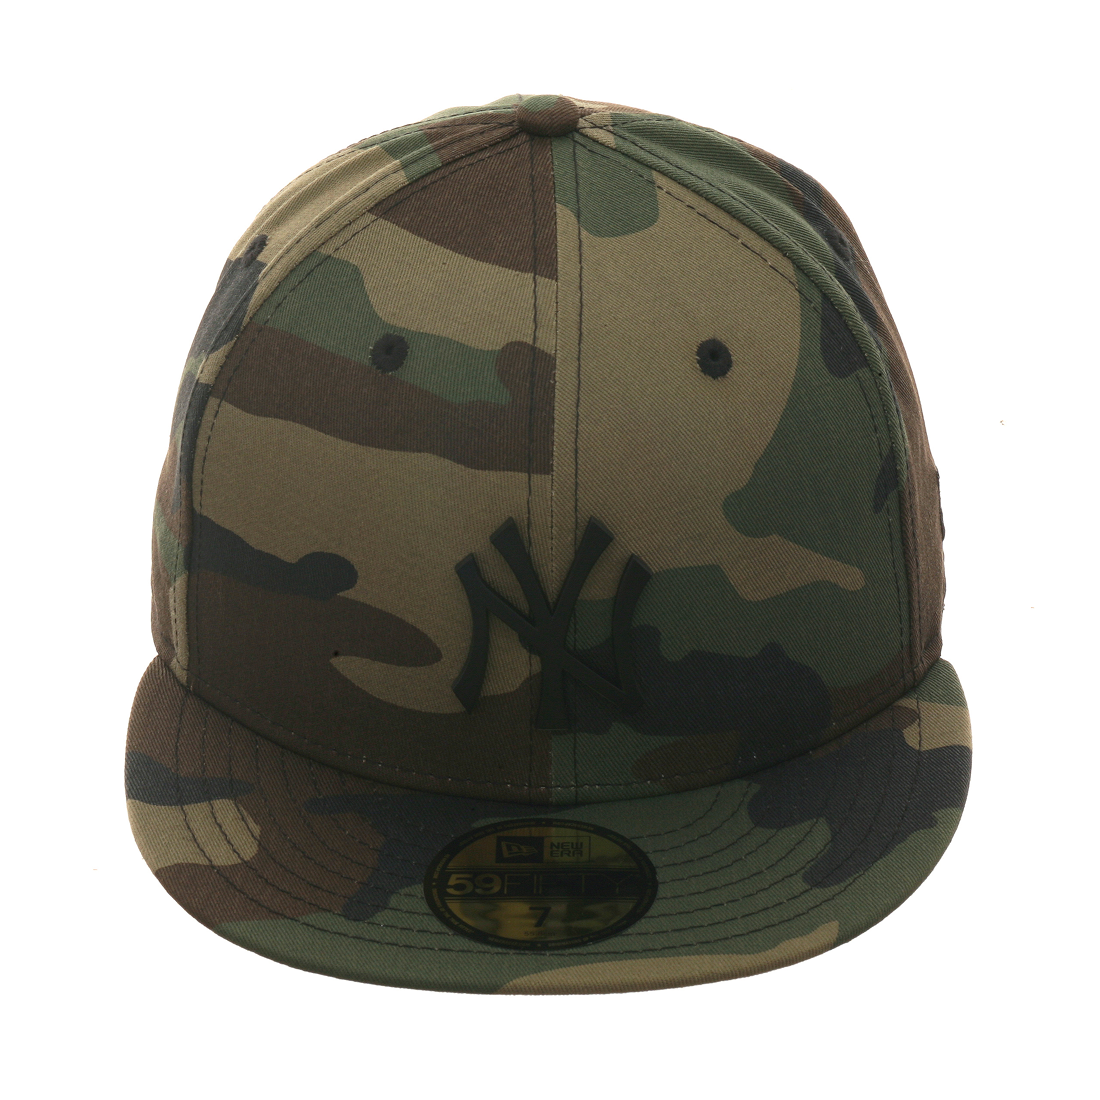 3e4222f7ca6 Exclusive New Era 59Fifty New York Yankees Matte Badge Hat - Camouflage